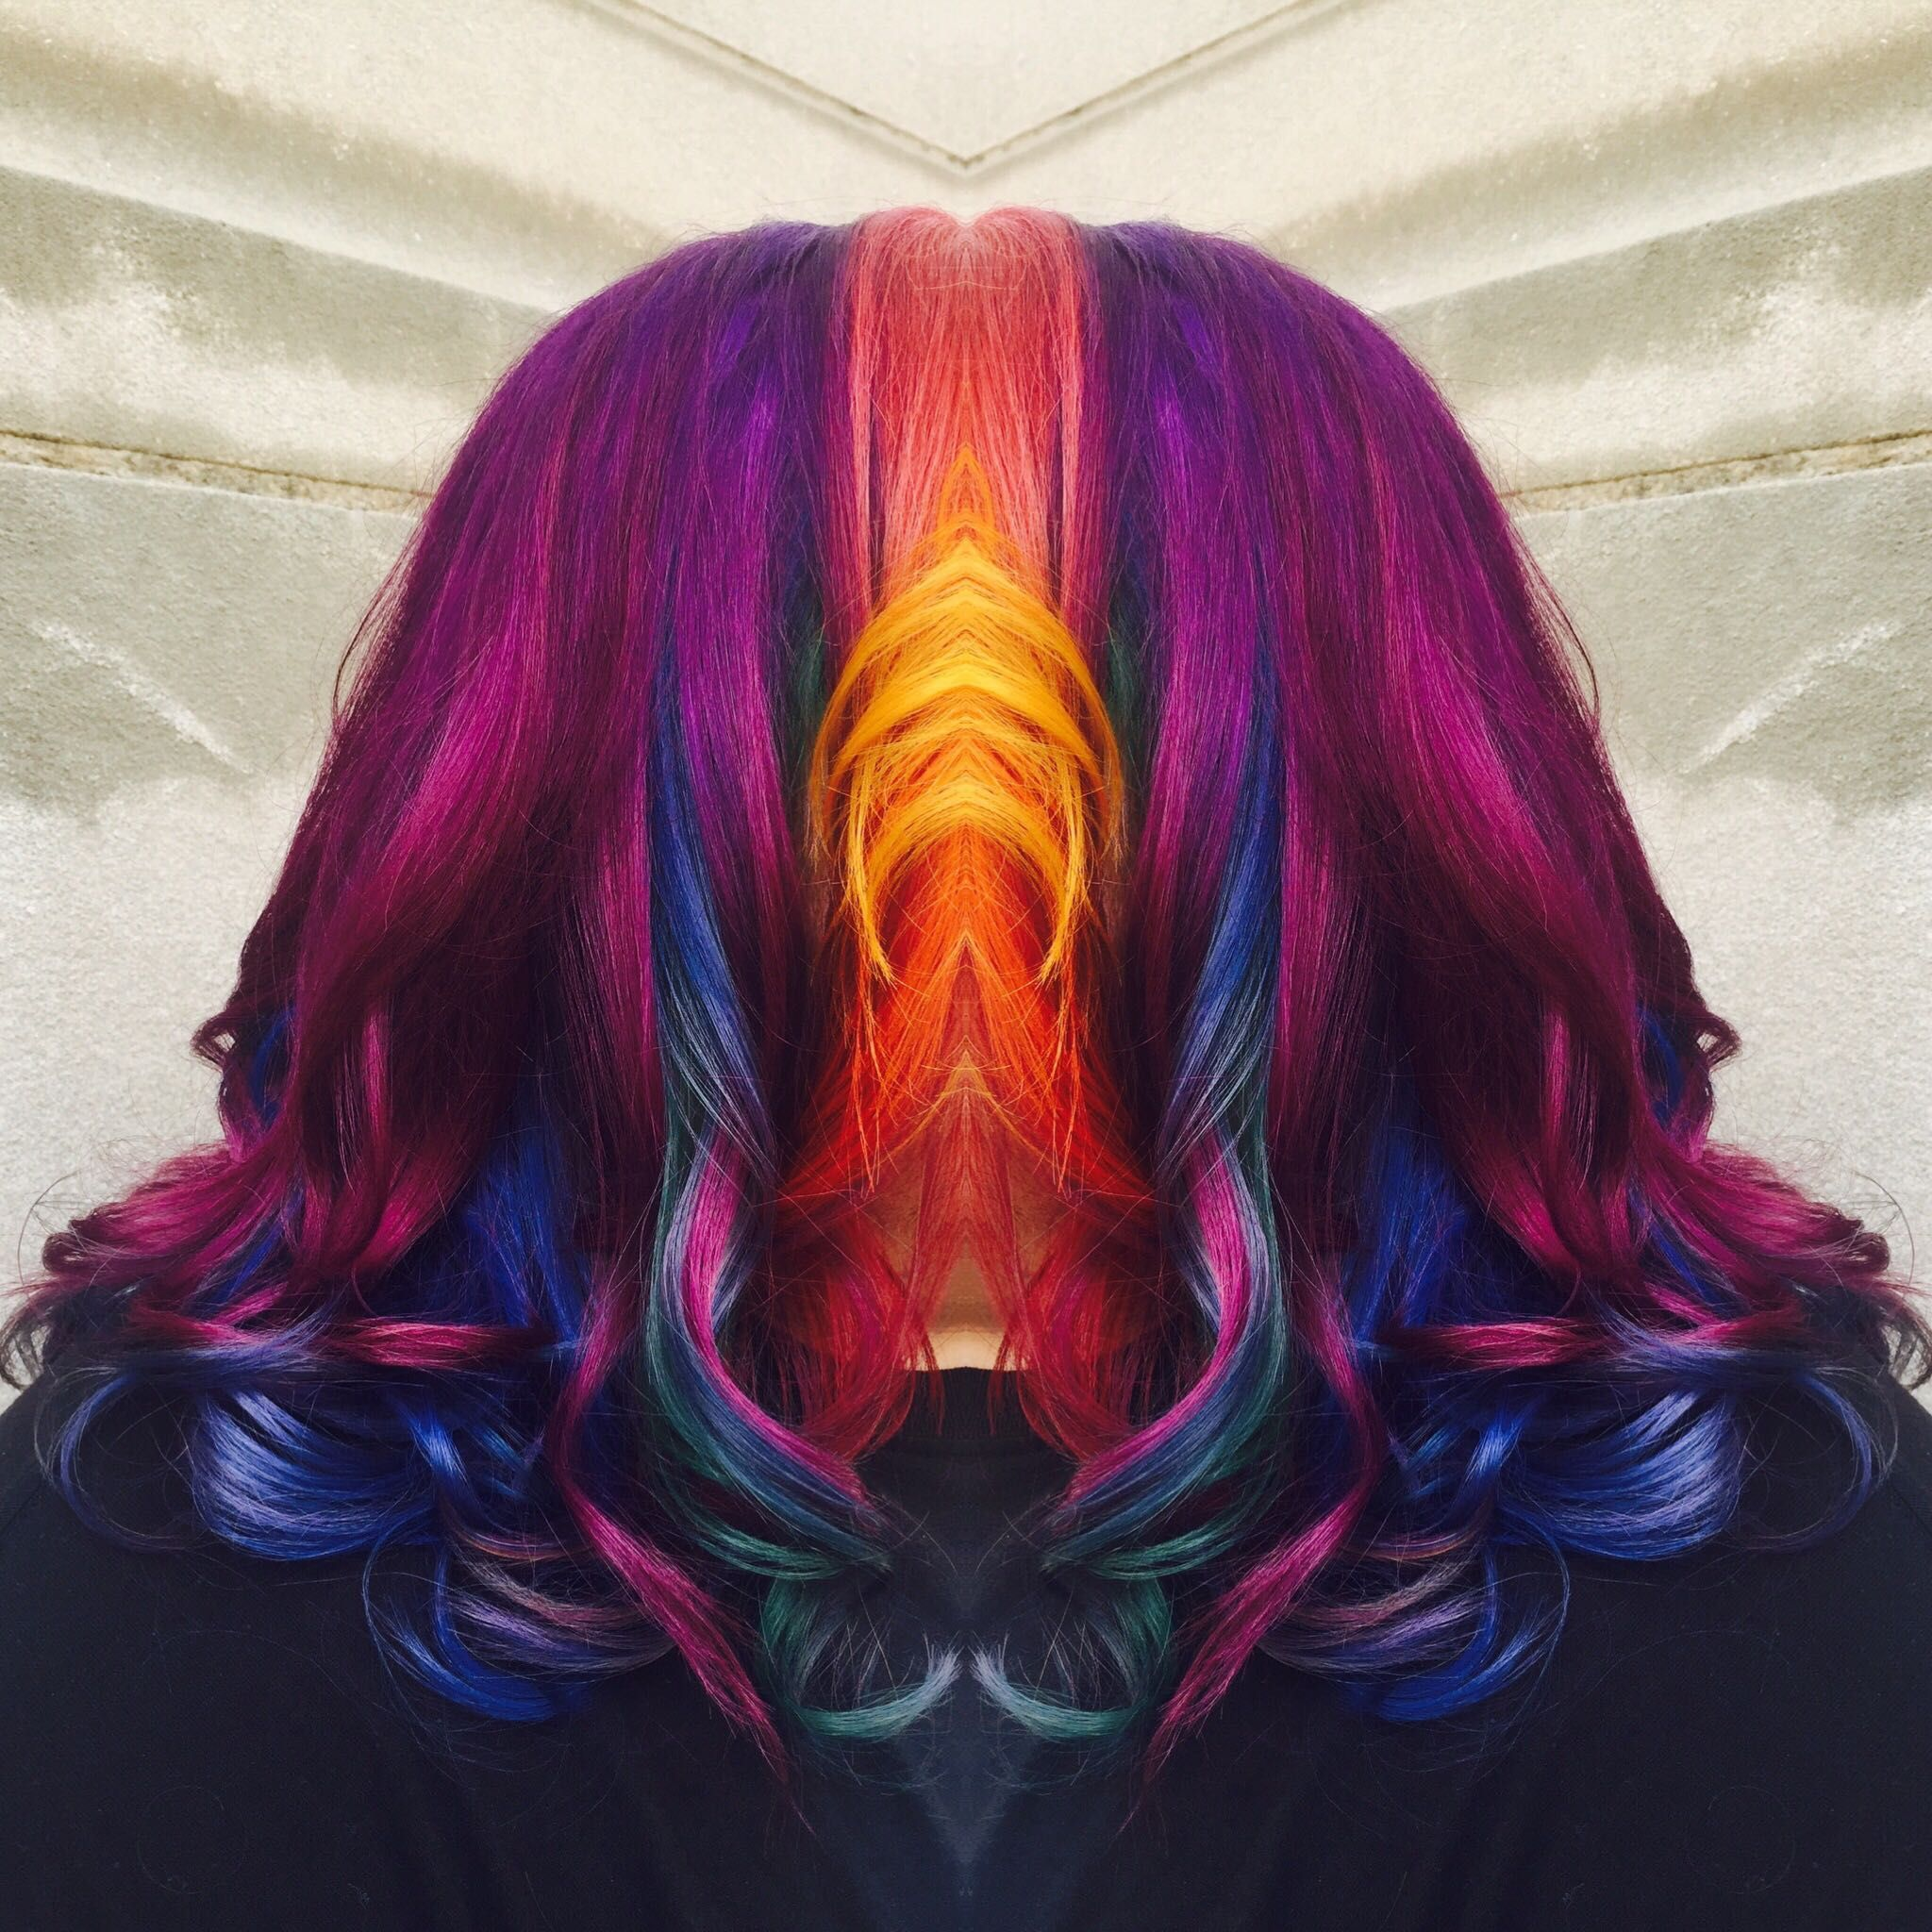 Rainbow hair (with a instagram edit to hide my client's face)